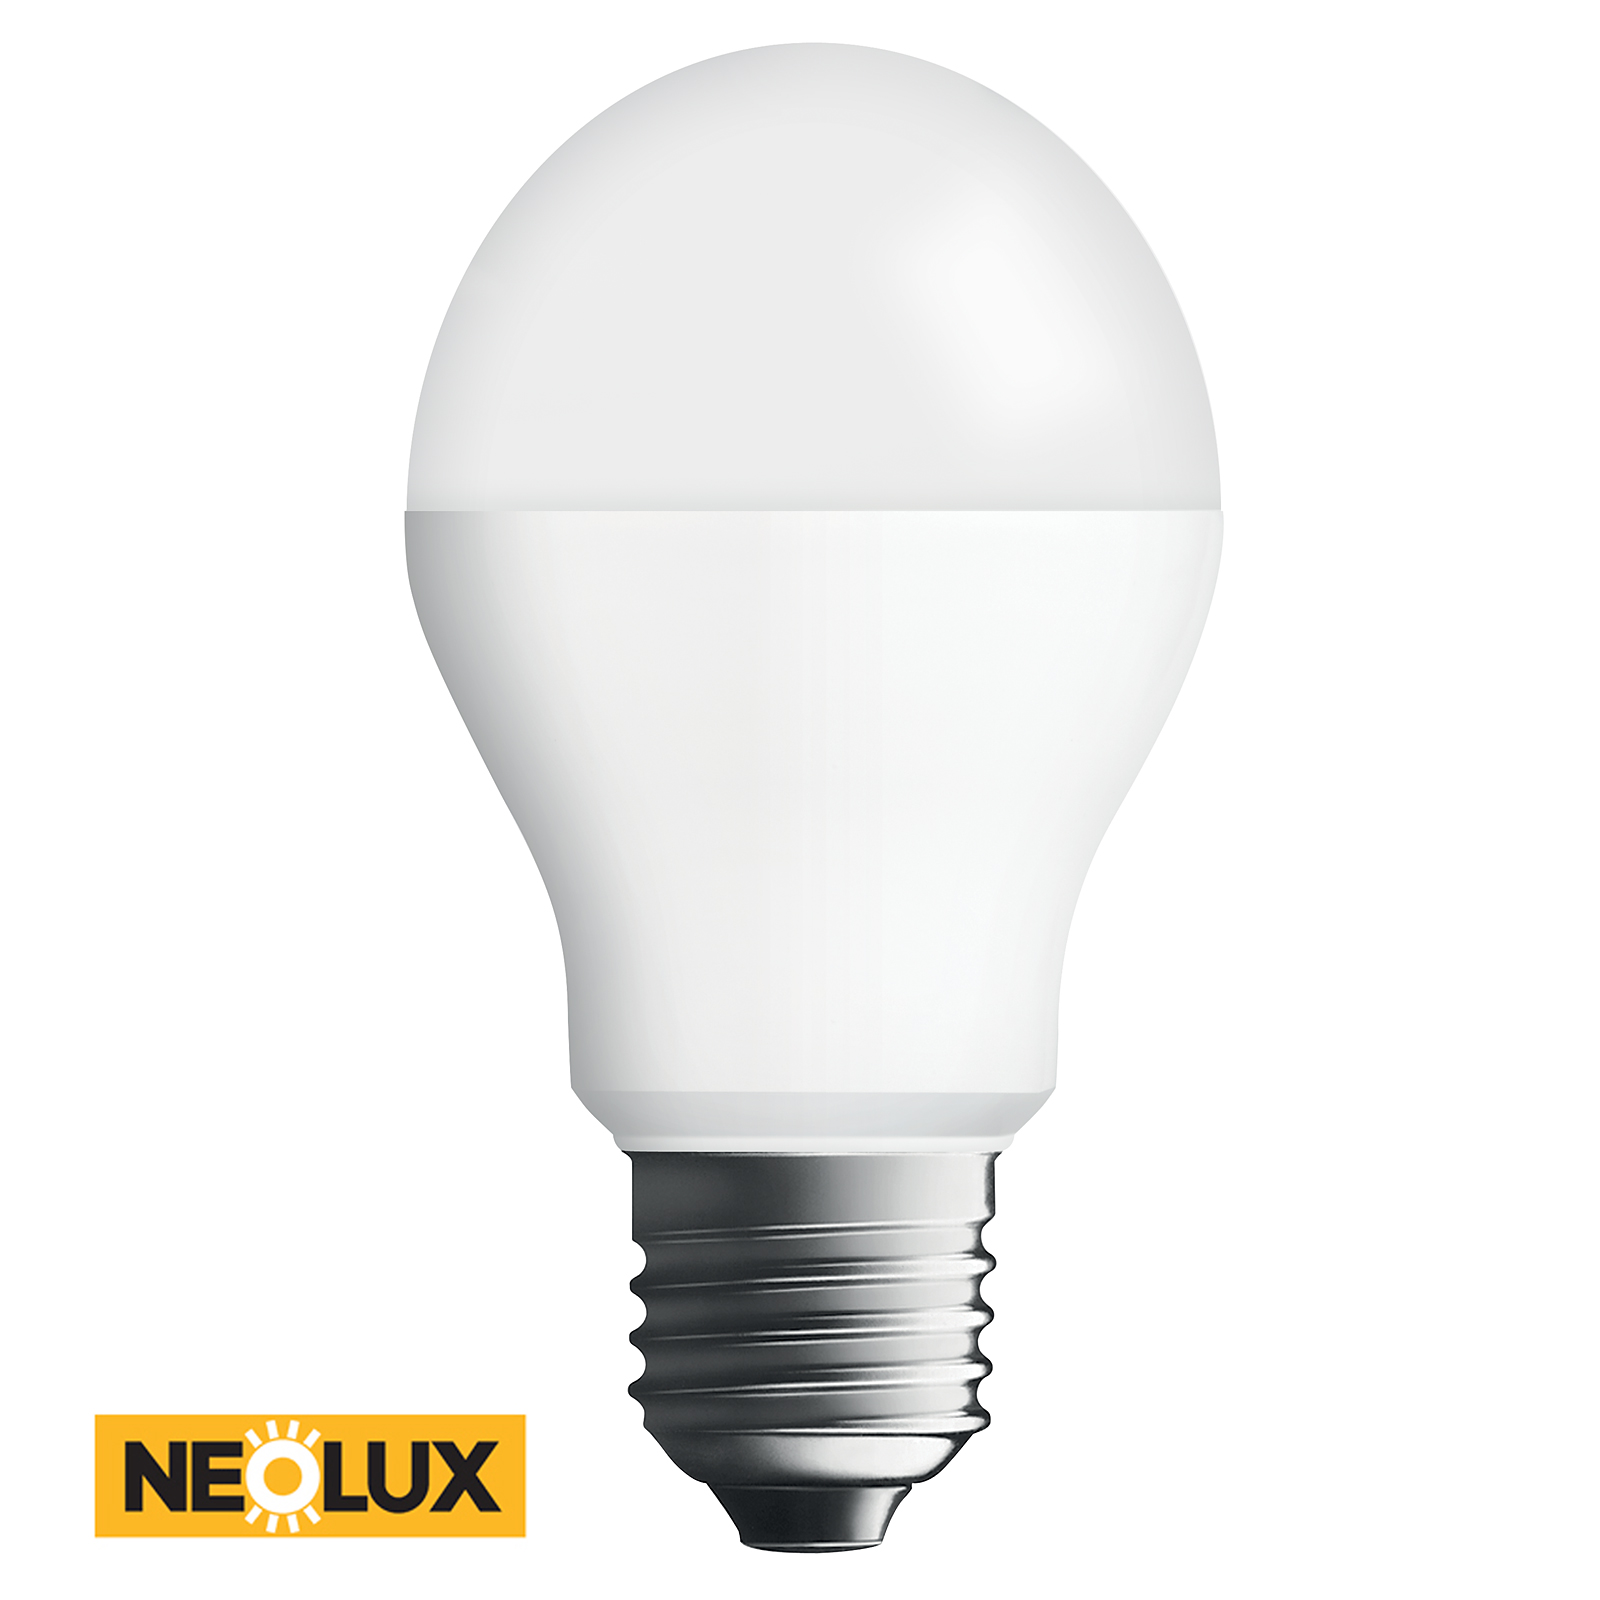 neolux led lampe e27 6w ersatz f r 40 watt 470 lumen warmwei ebay. Black Bedroom Furniture Sets. Home Design Ideas